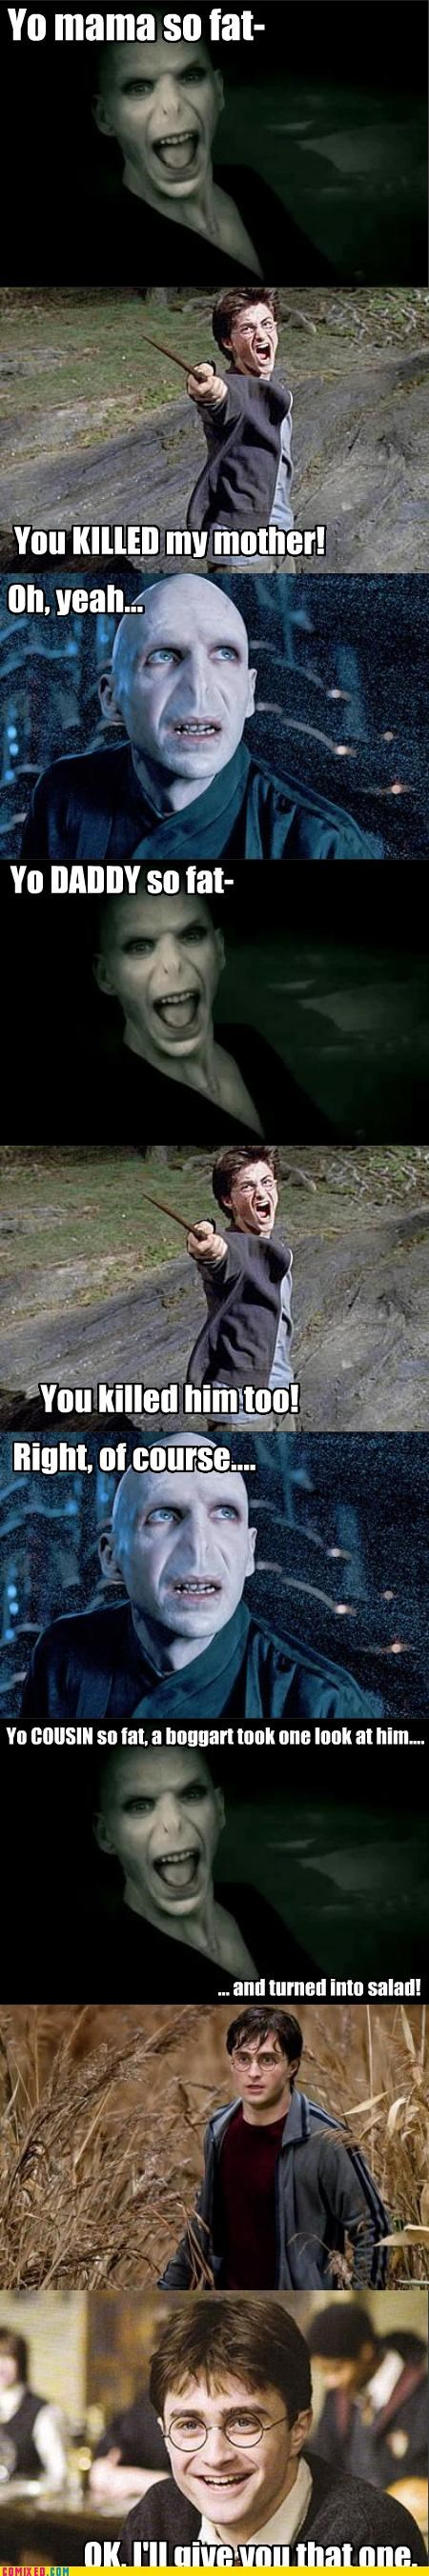 Harry Potter joke parents voldemort - 4678875392